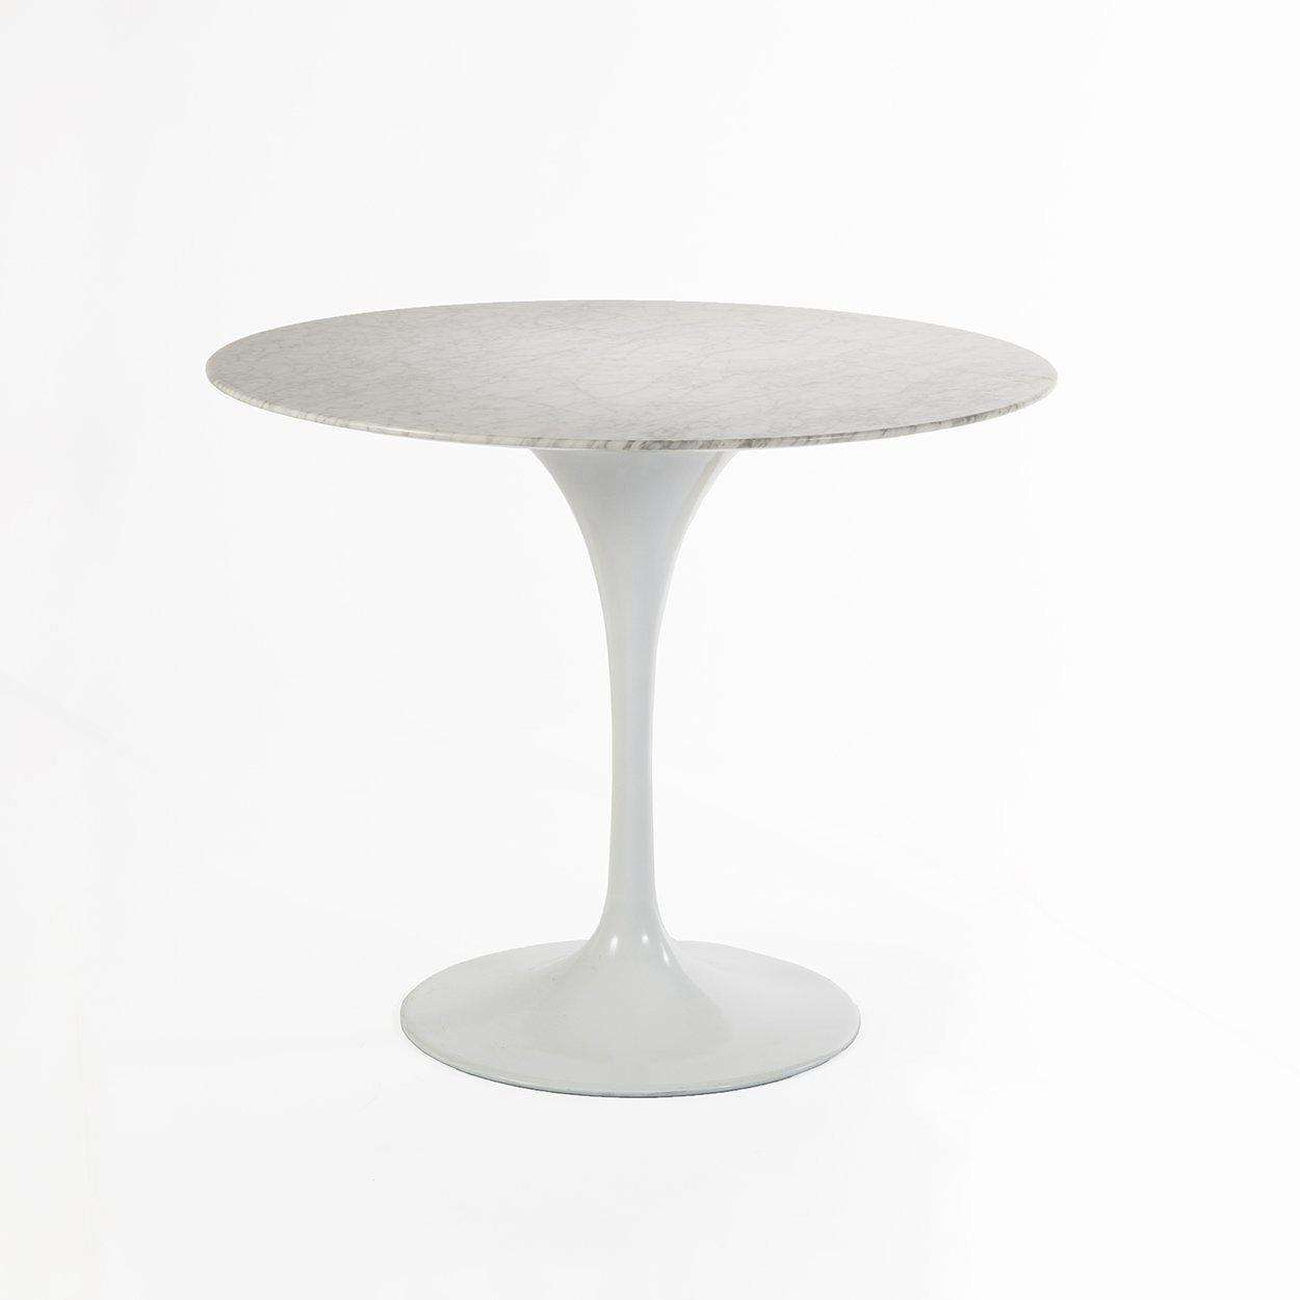 Mid Century Modern Reproduction Marble Tulip Dining Table 36 Quot Inspired By Eero Saarinen France Son